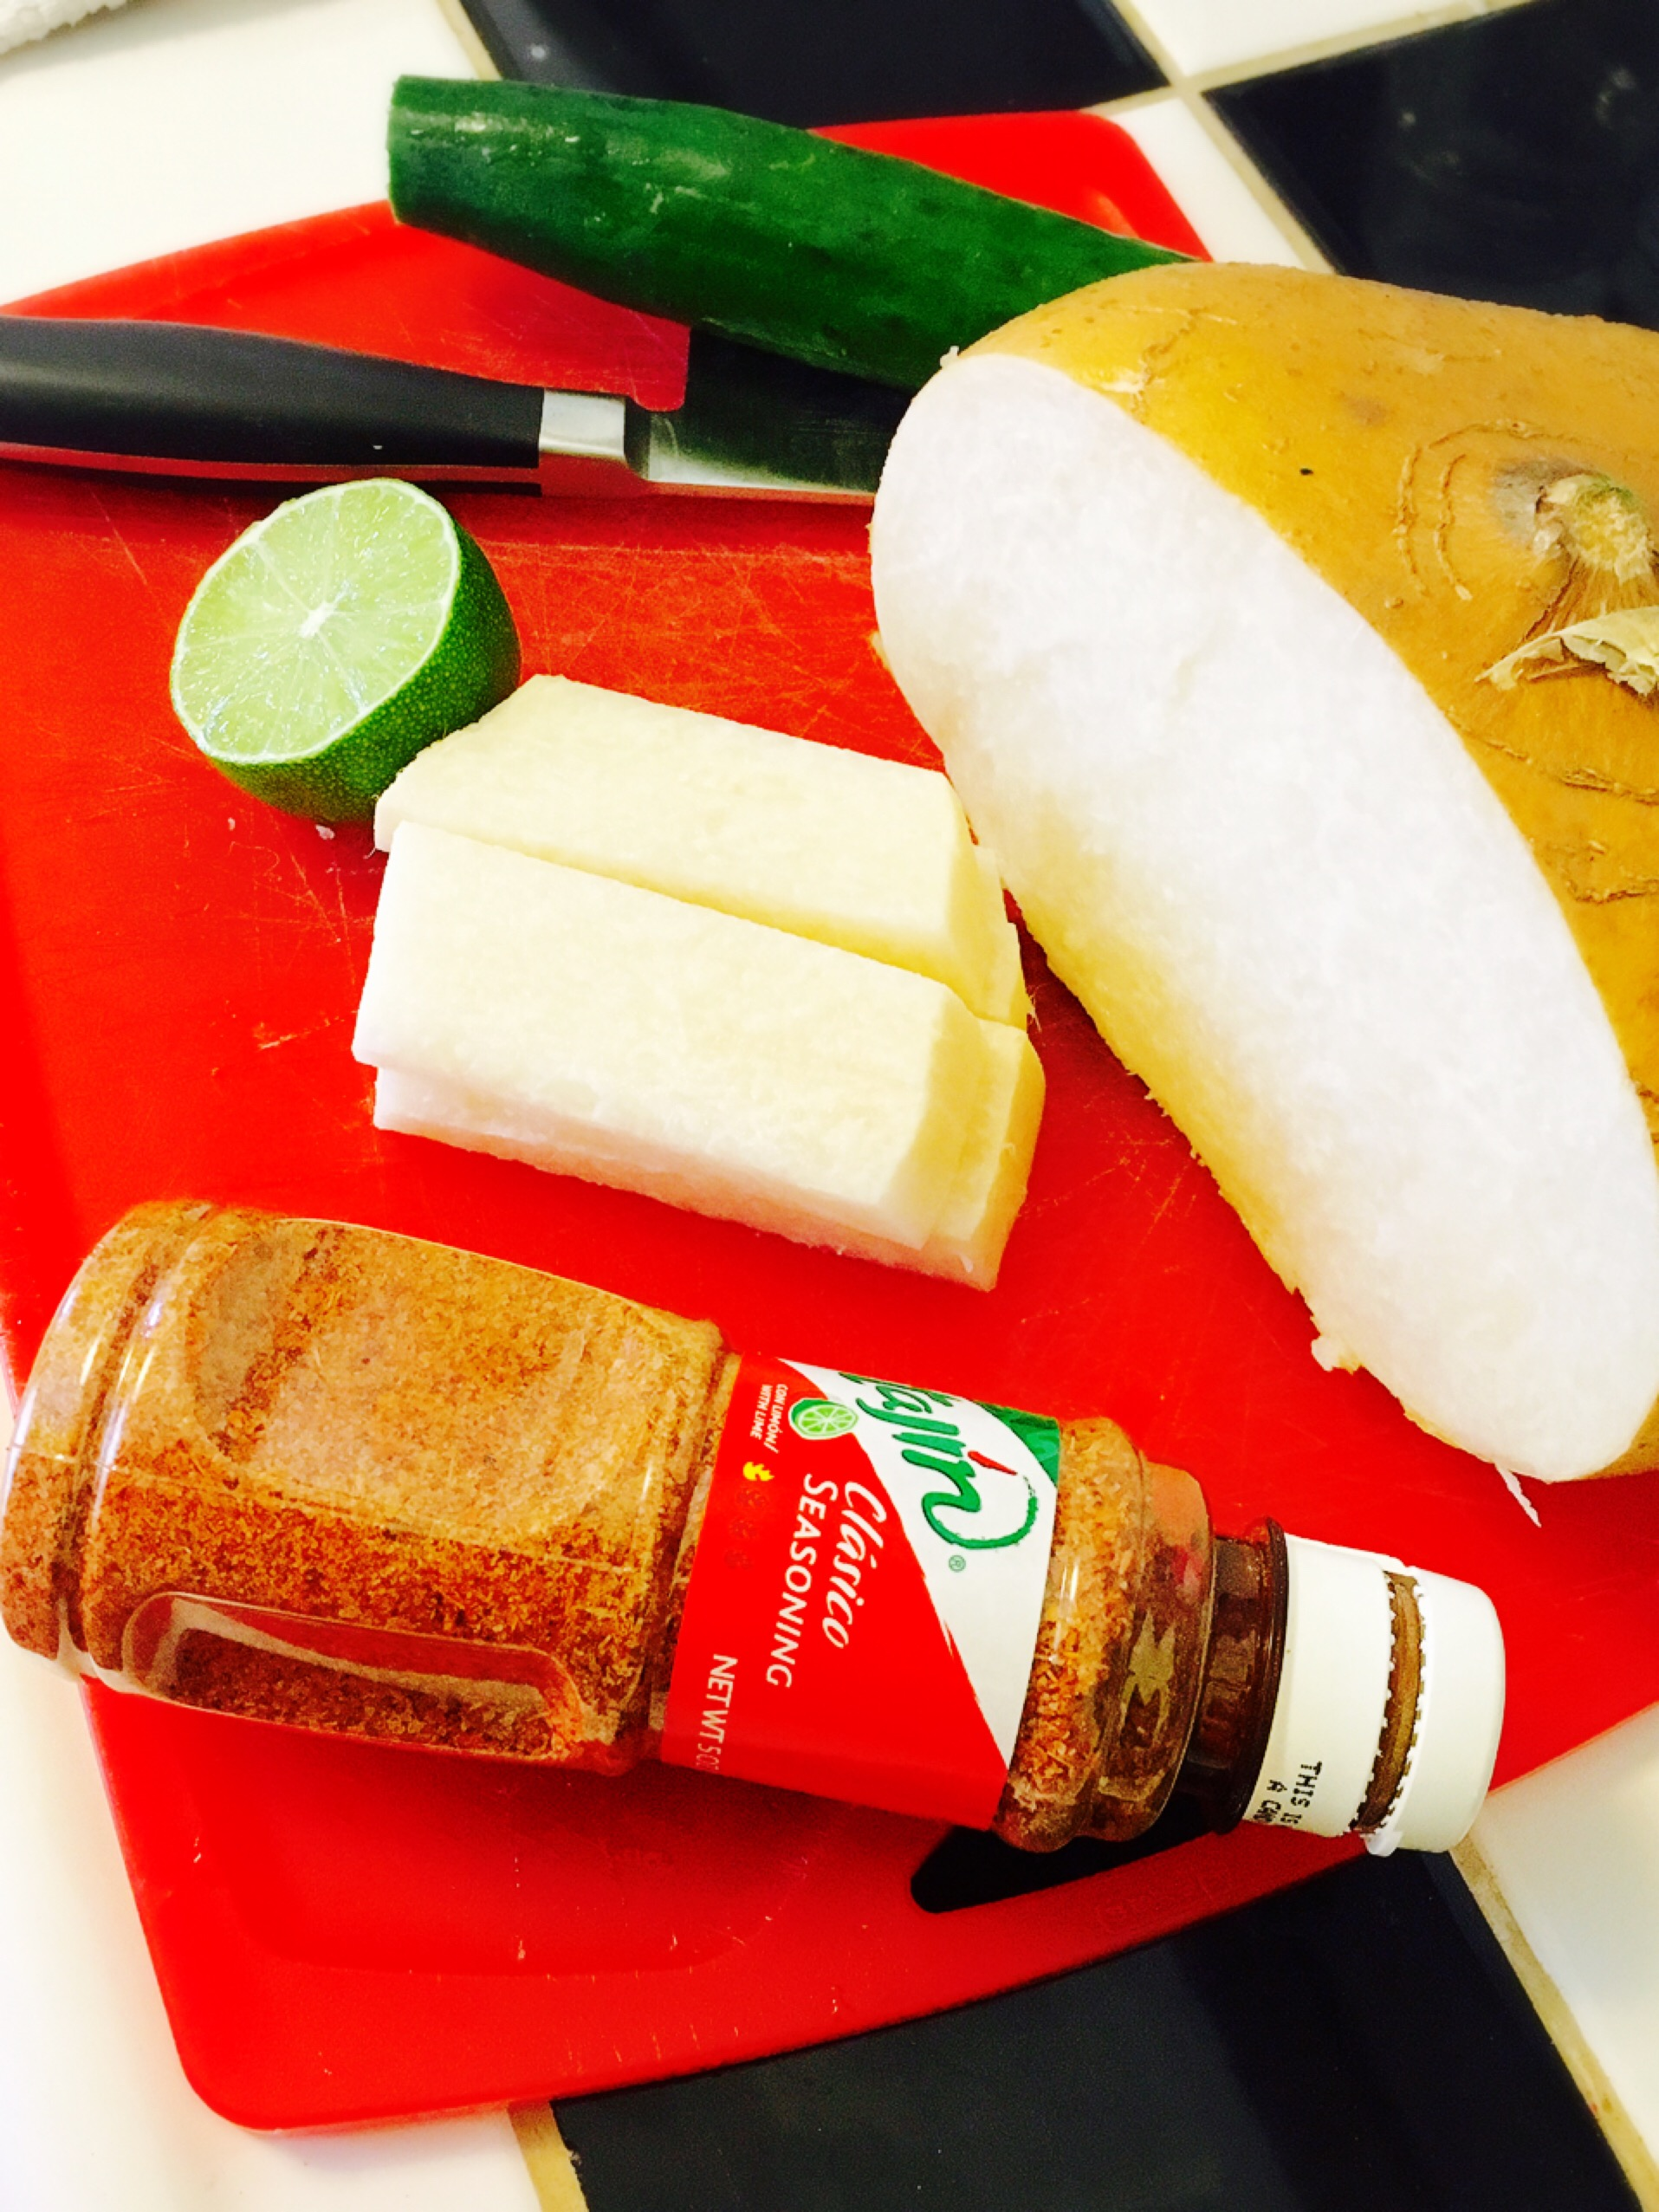 jicama-tajin-chili-powder-salad-ingredients